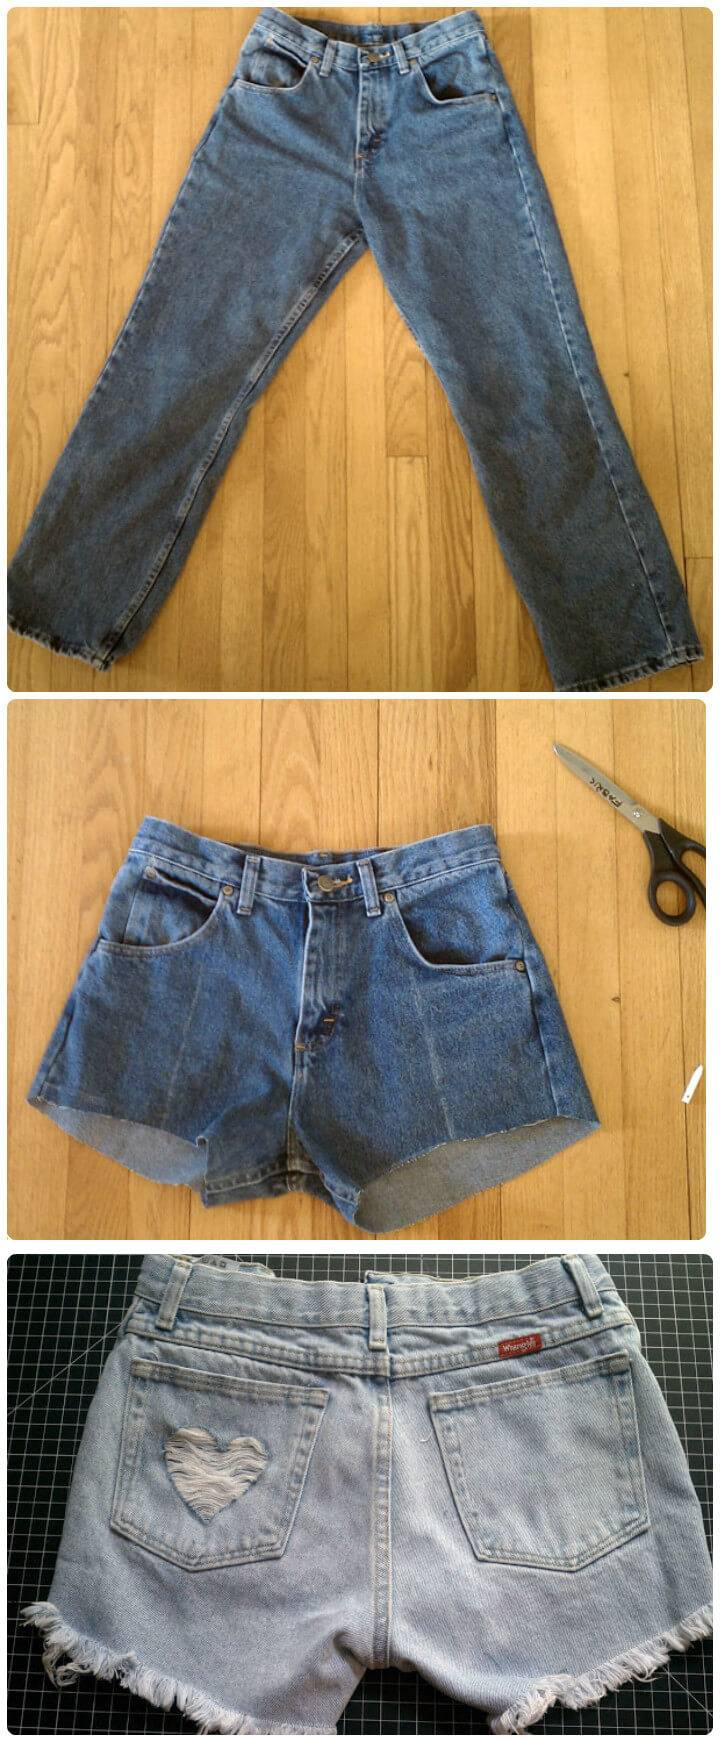 old jean cut-off shorts